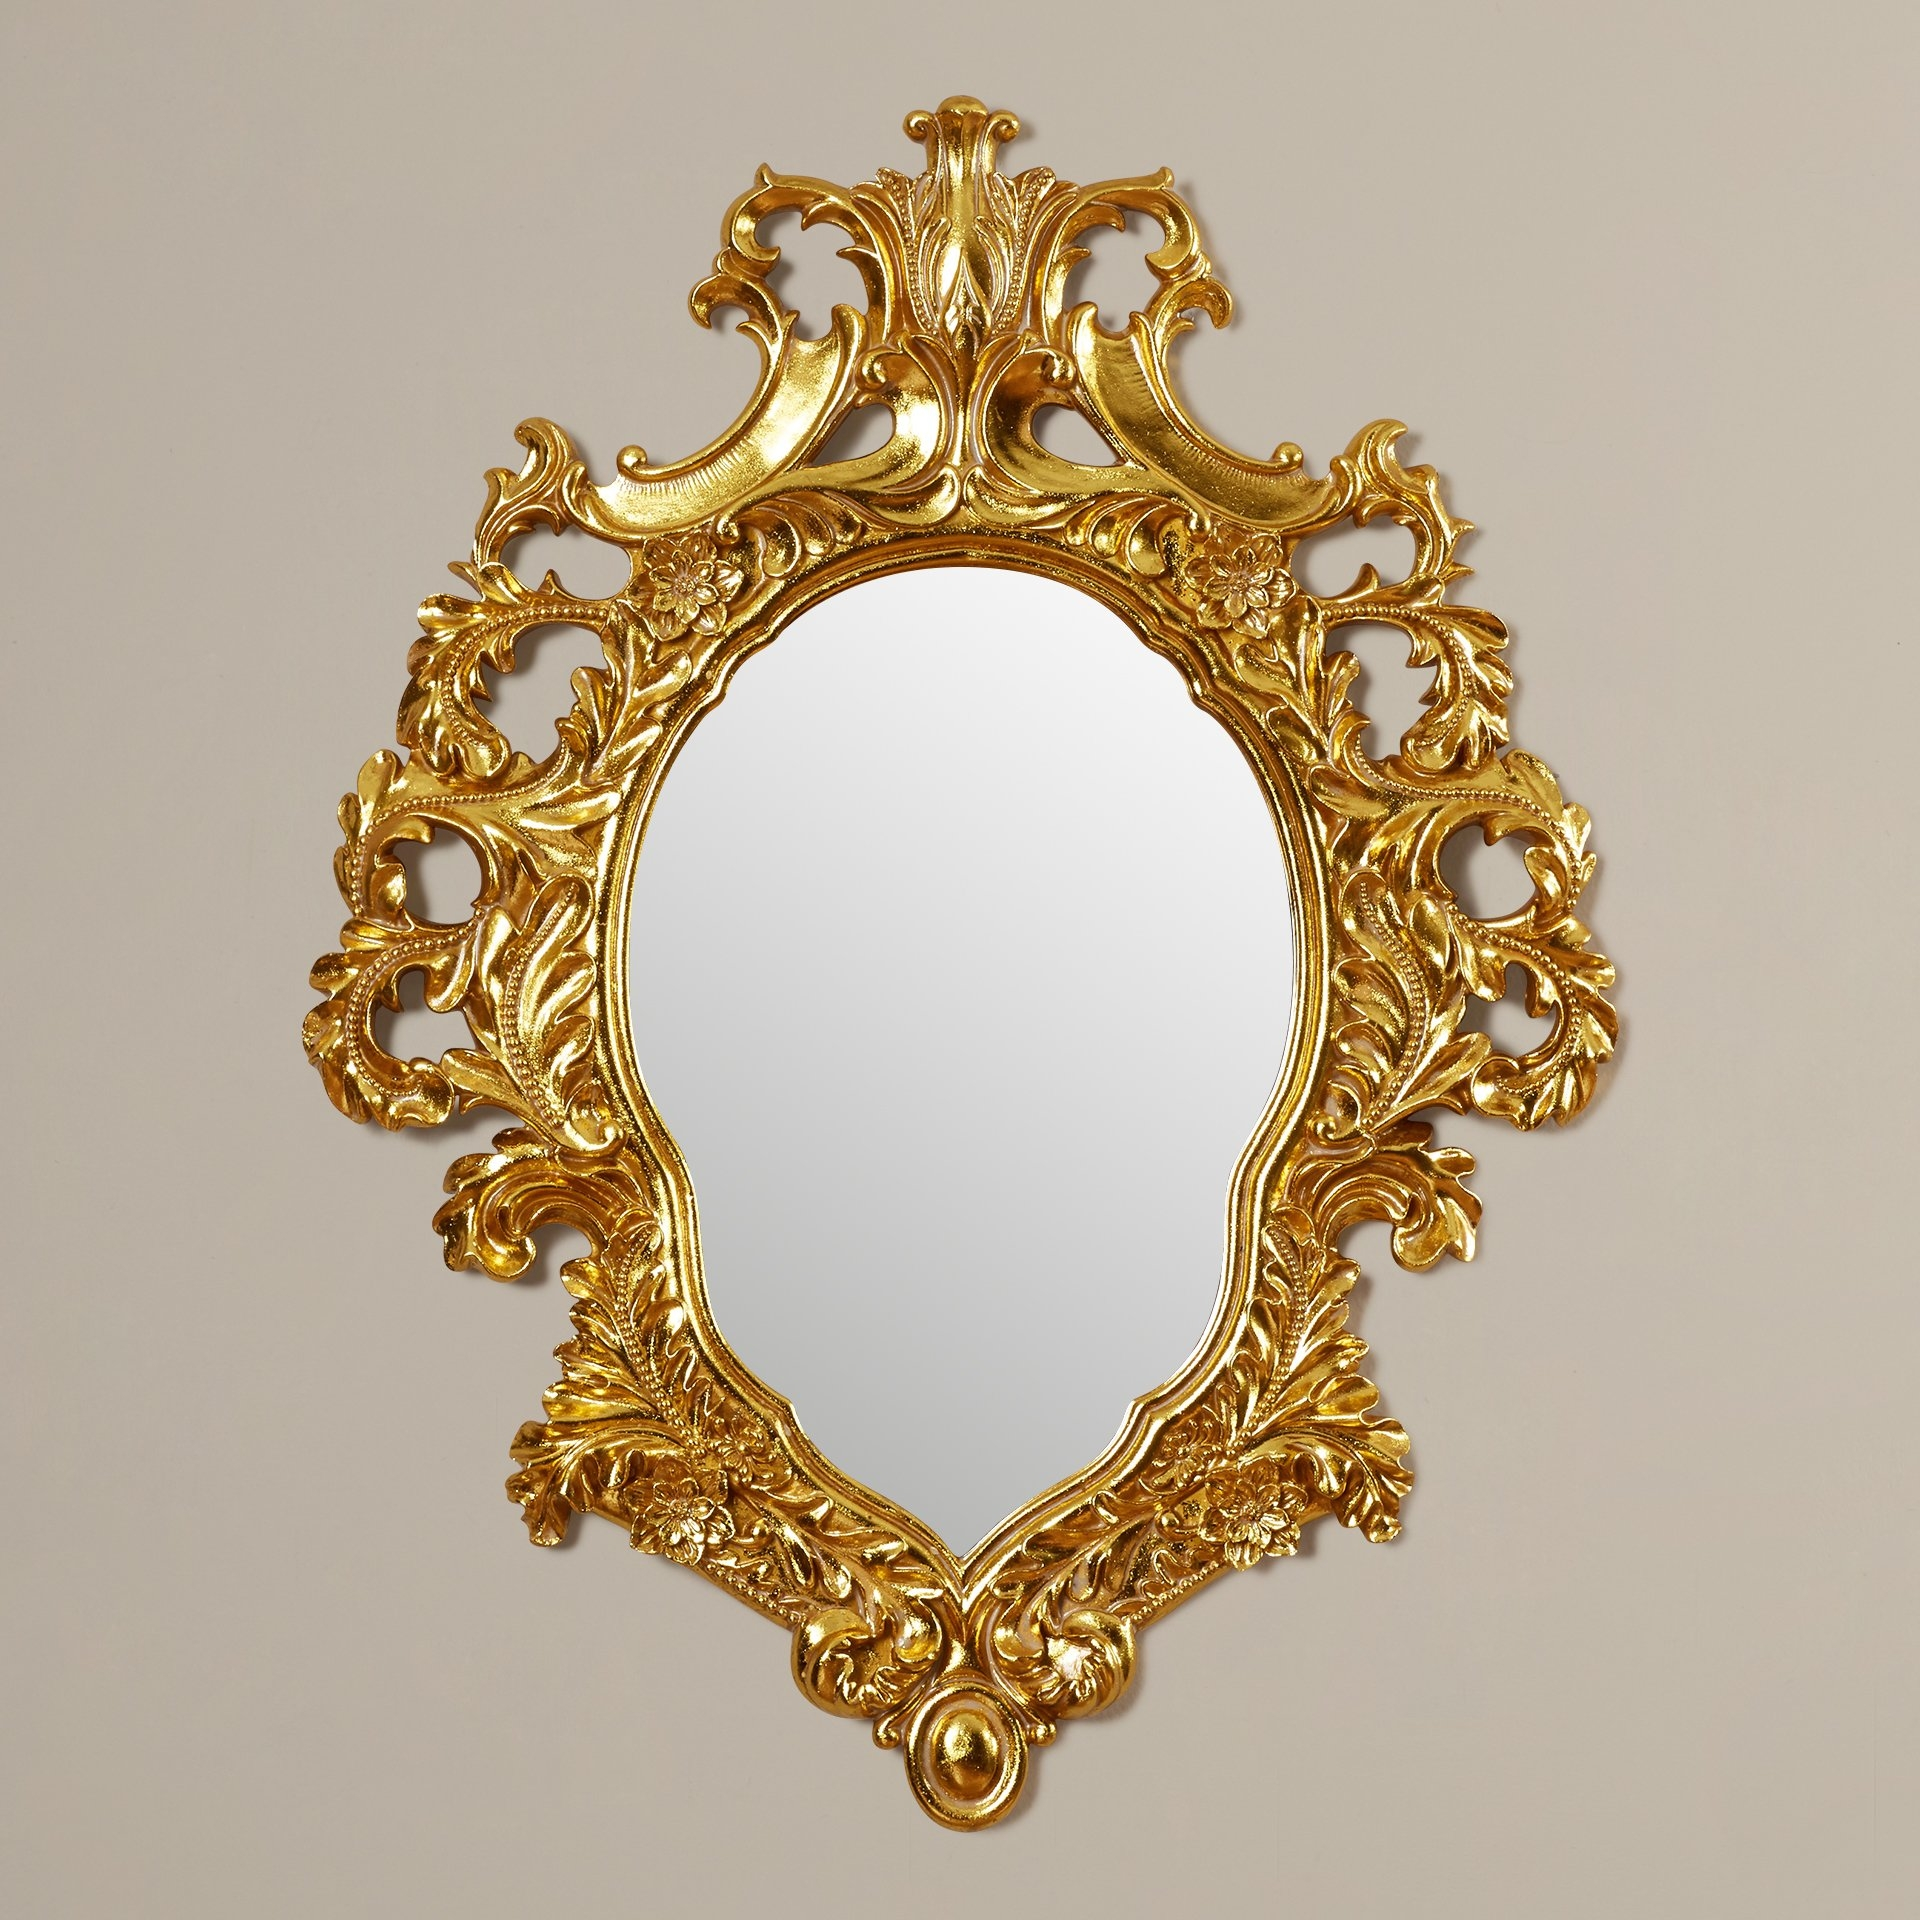 Design Toscano Madame Antoinette Salon Mirror Reviews Wayfair Regarding Rococo Gold Mirror (Image 5 of 15)